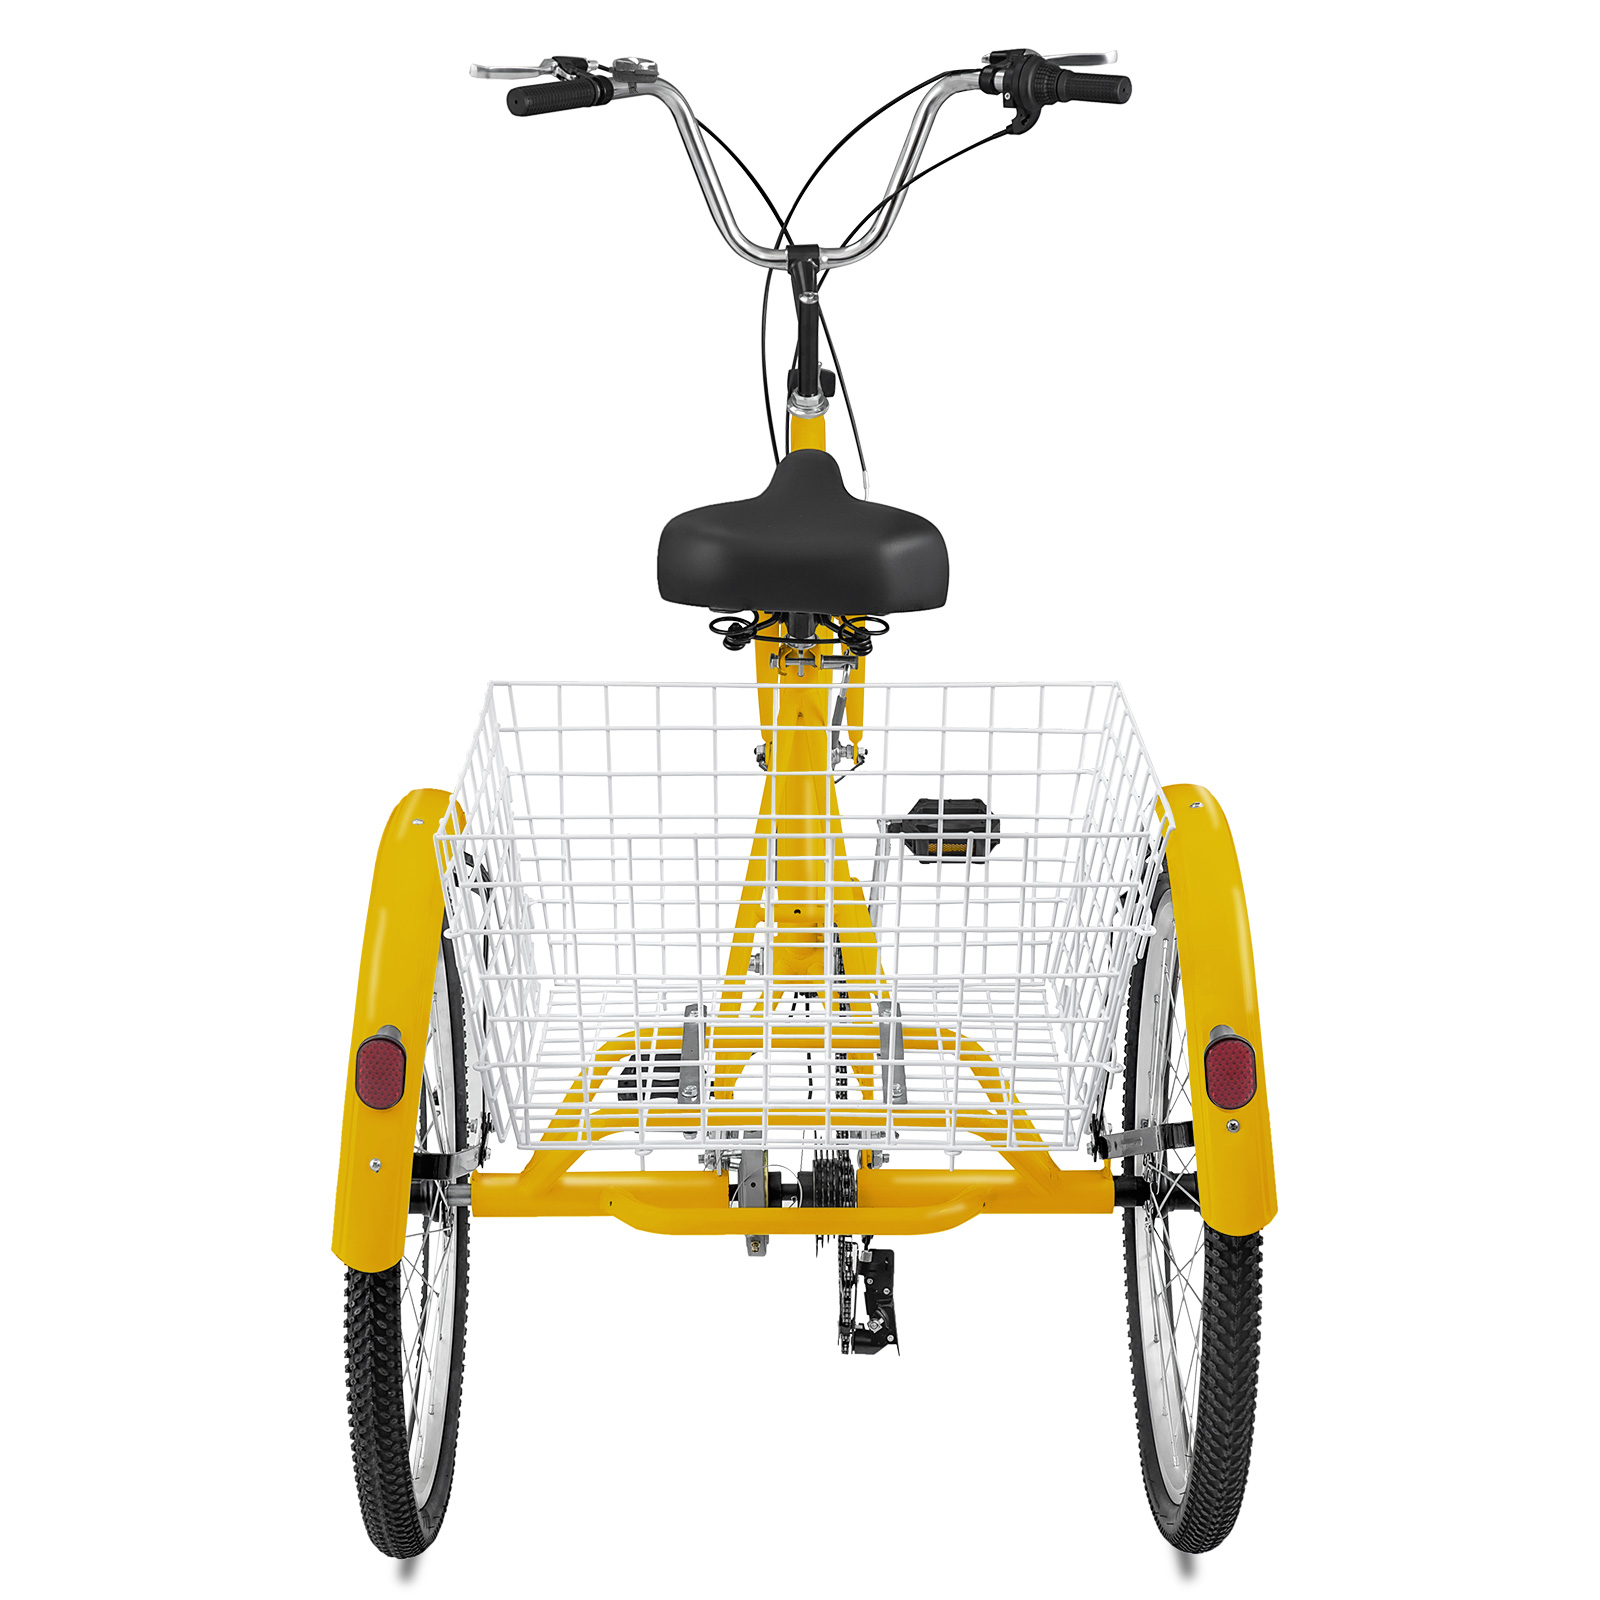 20-24-26-034-Adult-Tricycle-1-7-Speed-3-Wheel-Large-Basket-For-Shopping-Optional thumbnail 180